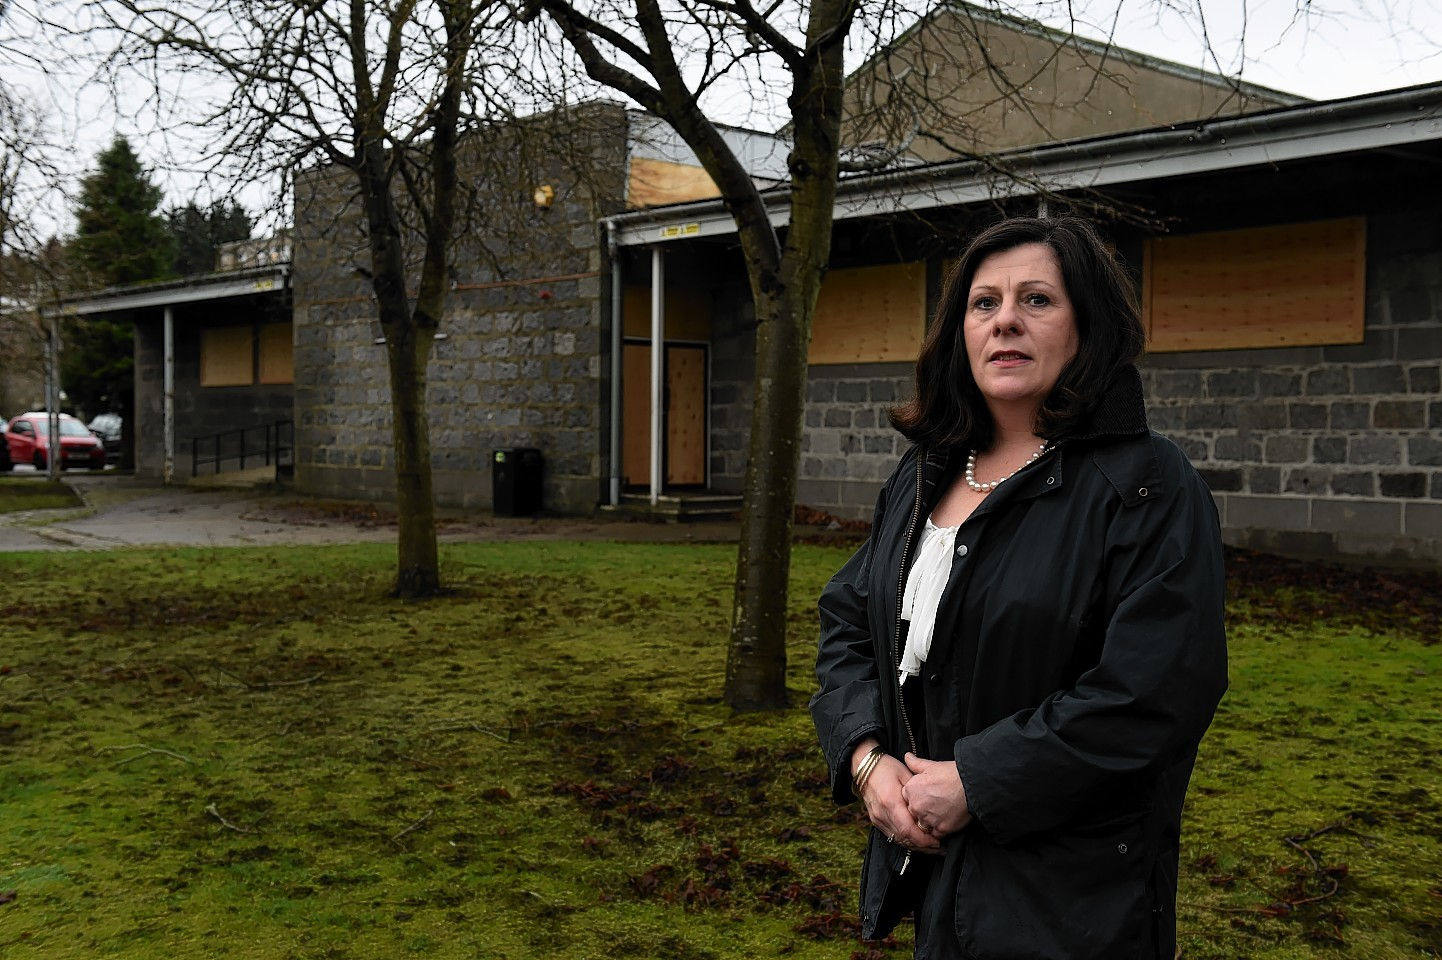 Jennifer Stewart has backed the council's controversial plans.